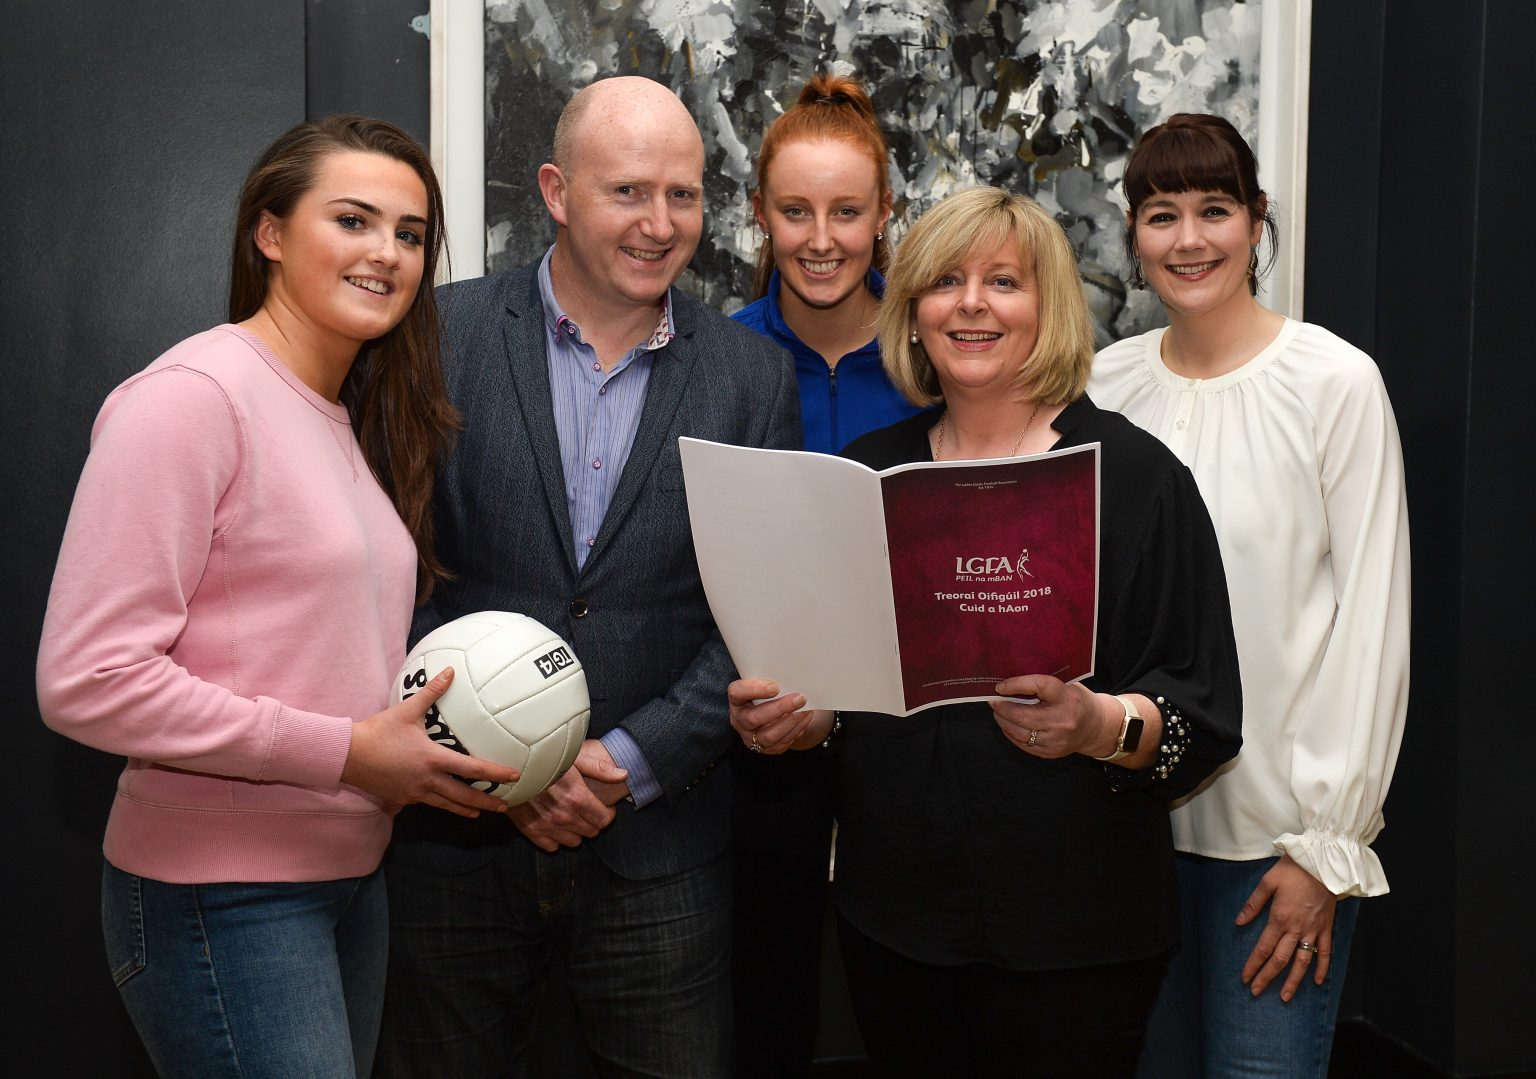 LGFA And TG4 Announce Summer TV Schedule